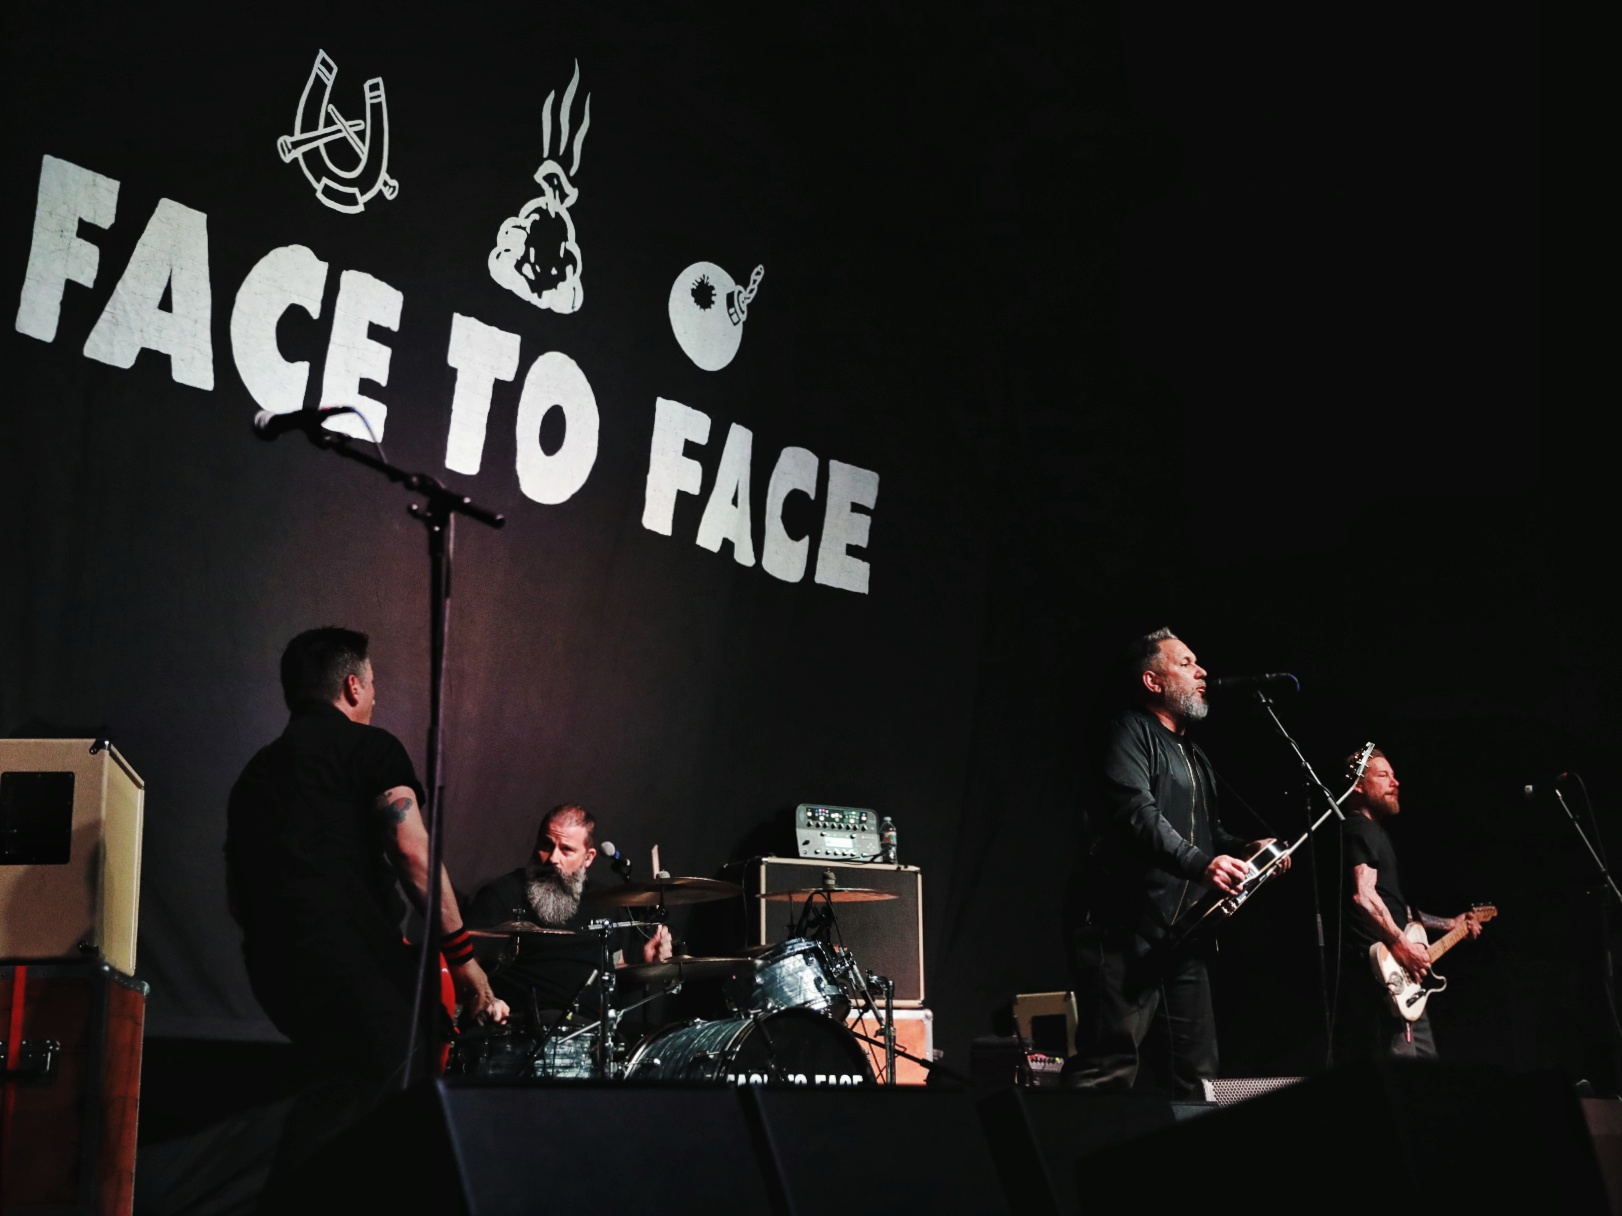 Face to Face playing at The Complex in Salt Lake City. Photo: @Lmsorenson